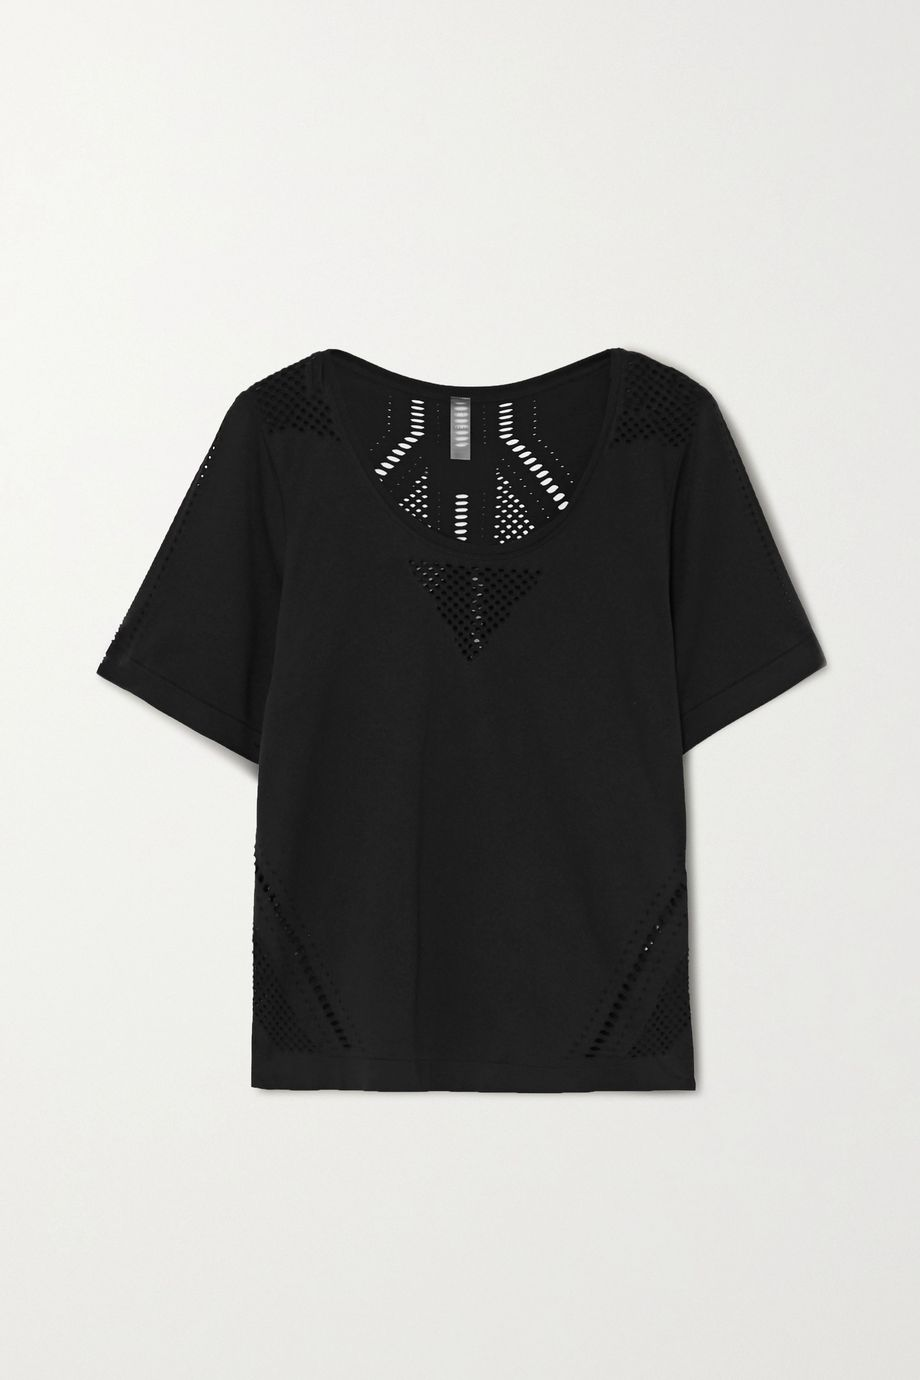 Varley Levinson perforated jersey T-shirt